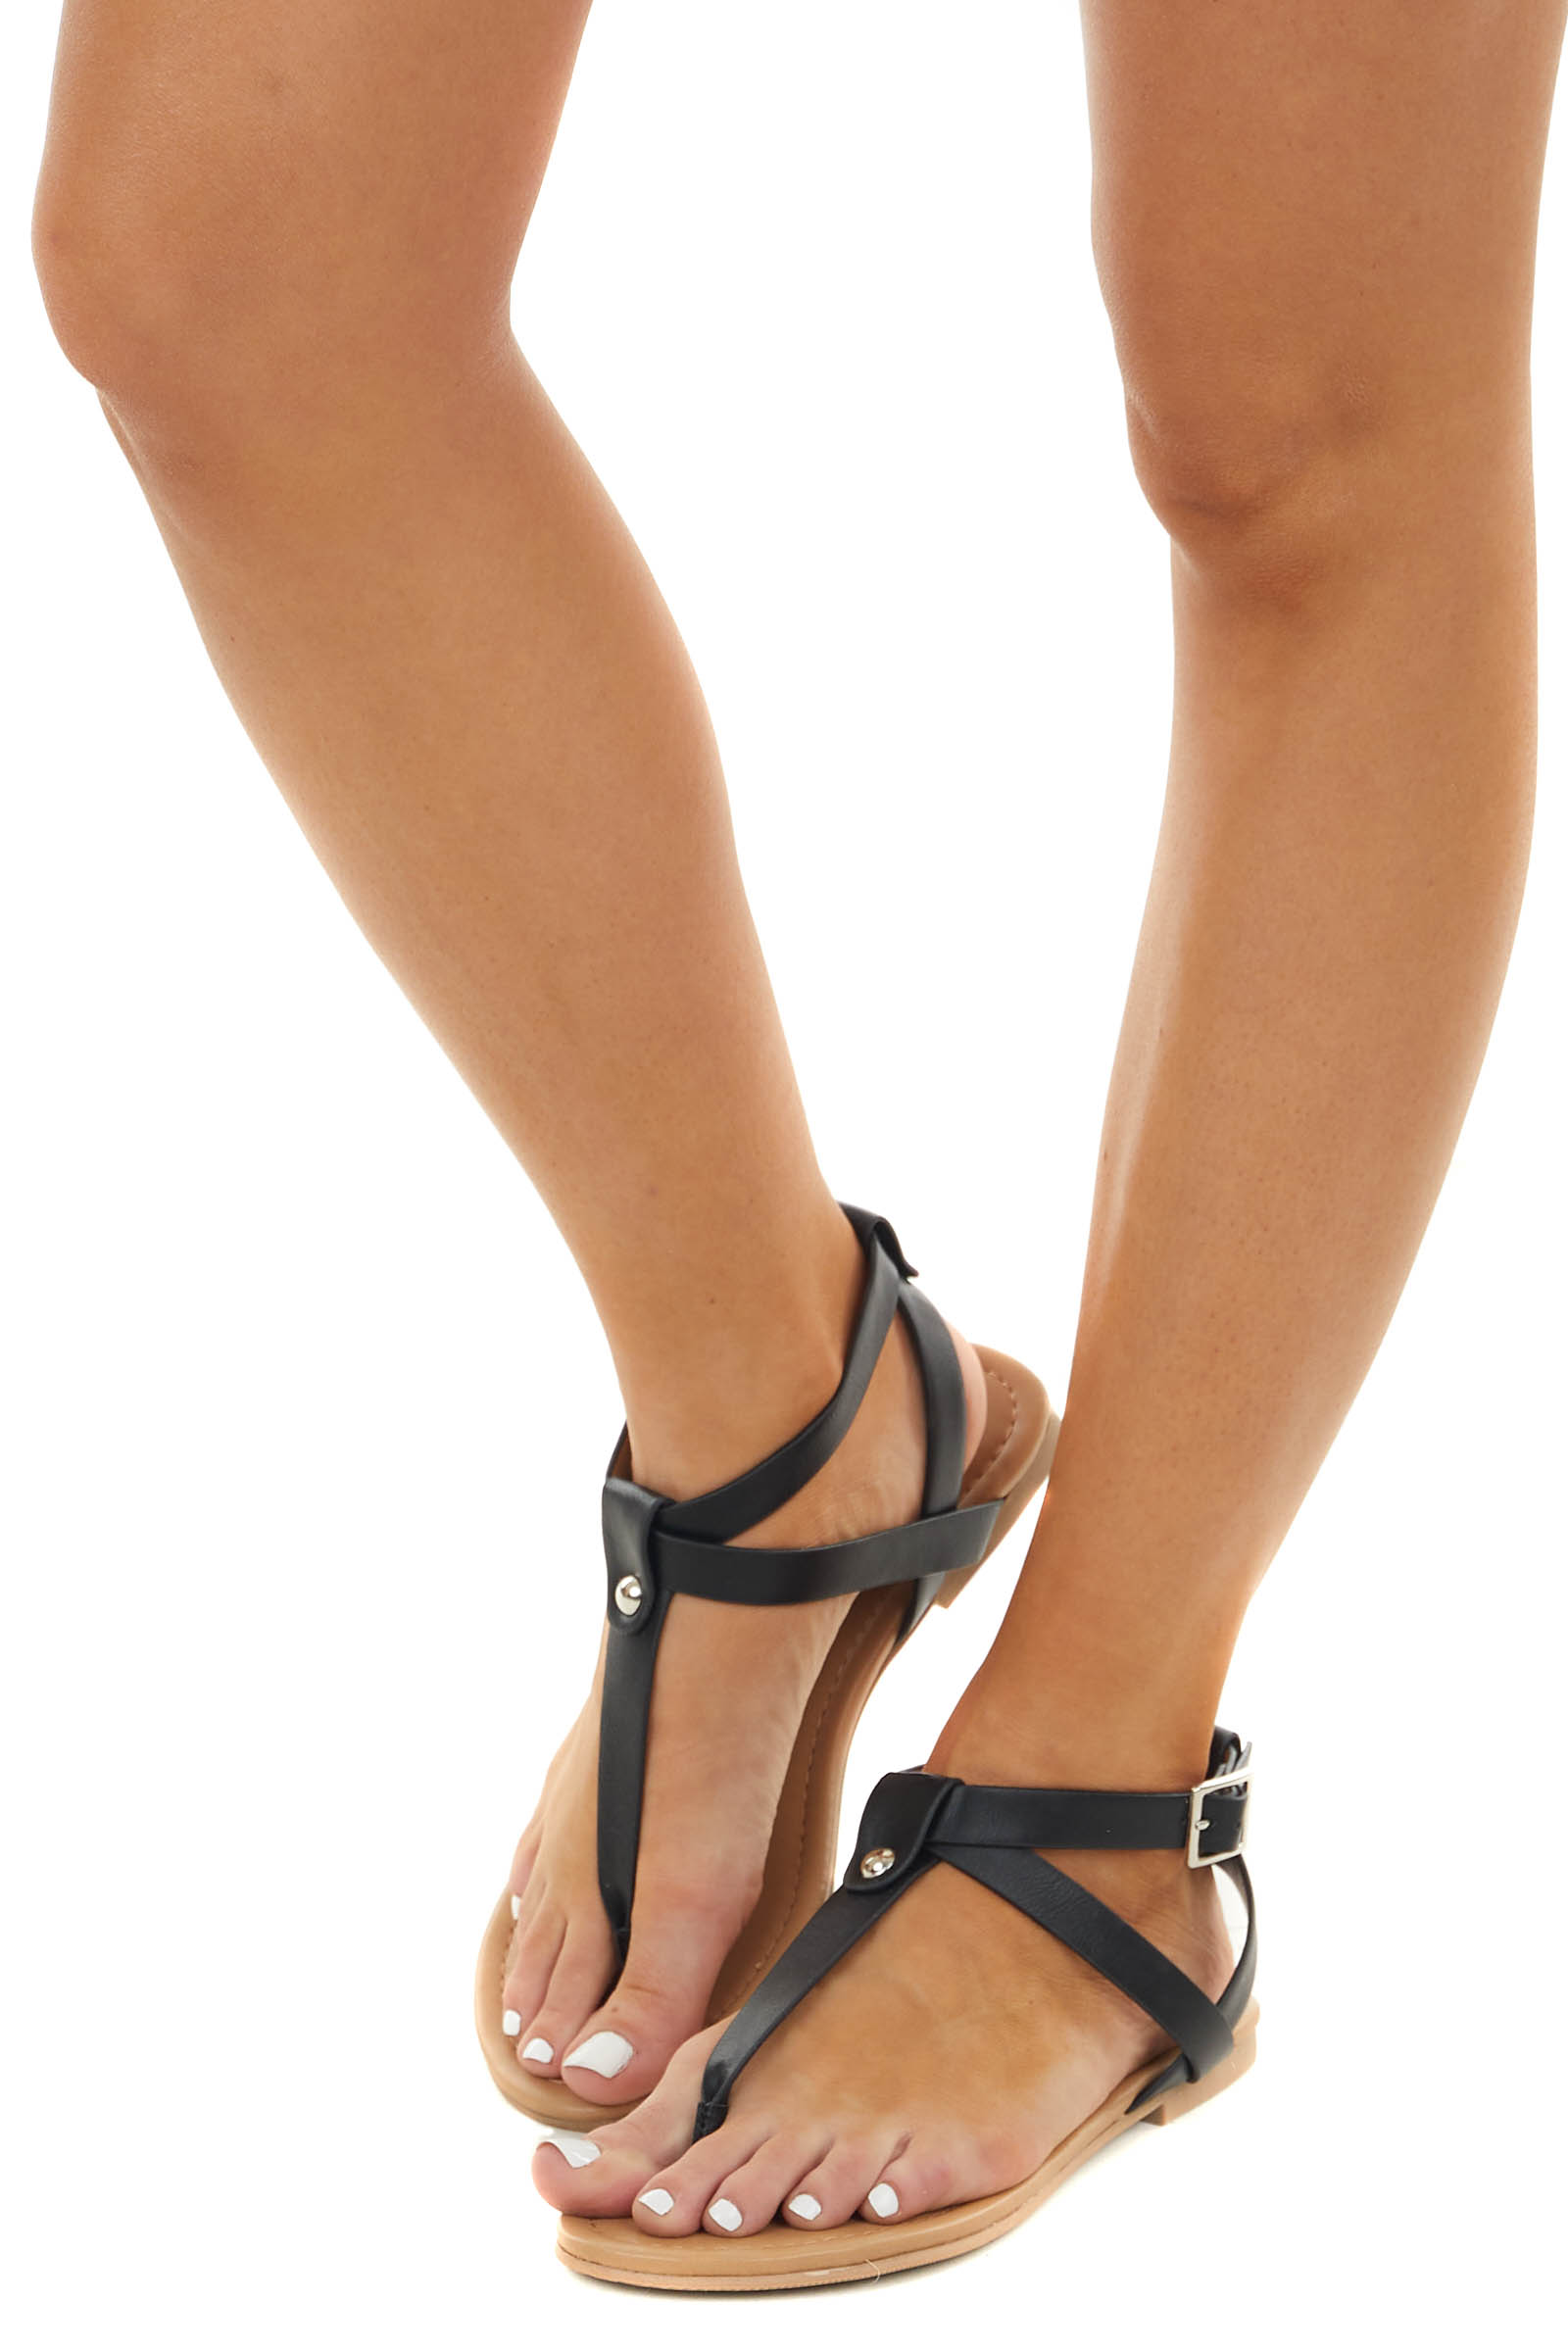 Black Strappy Sandals with Silver Stud